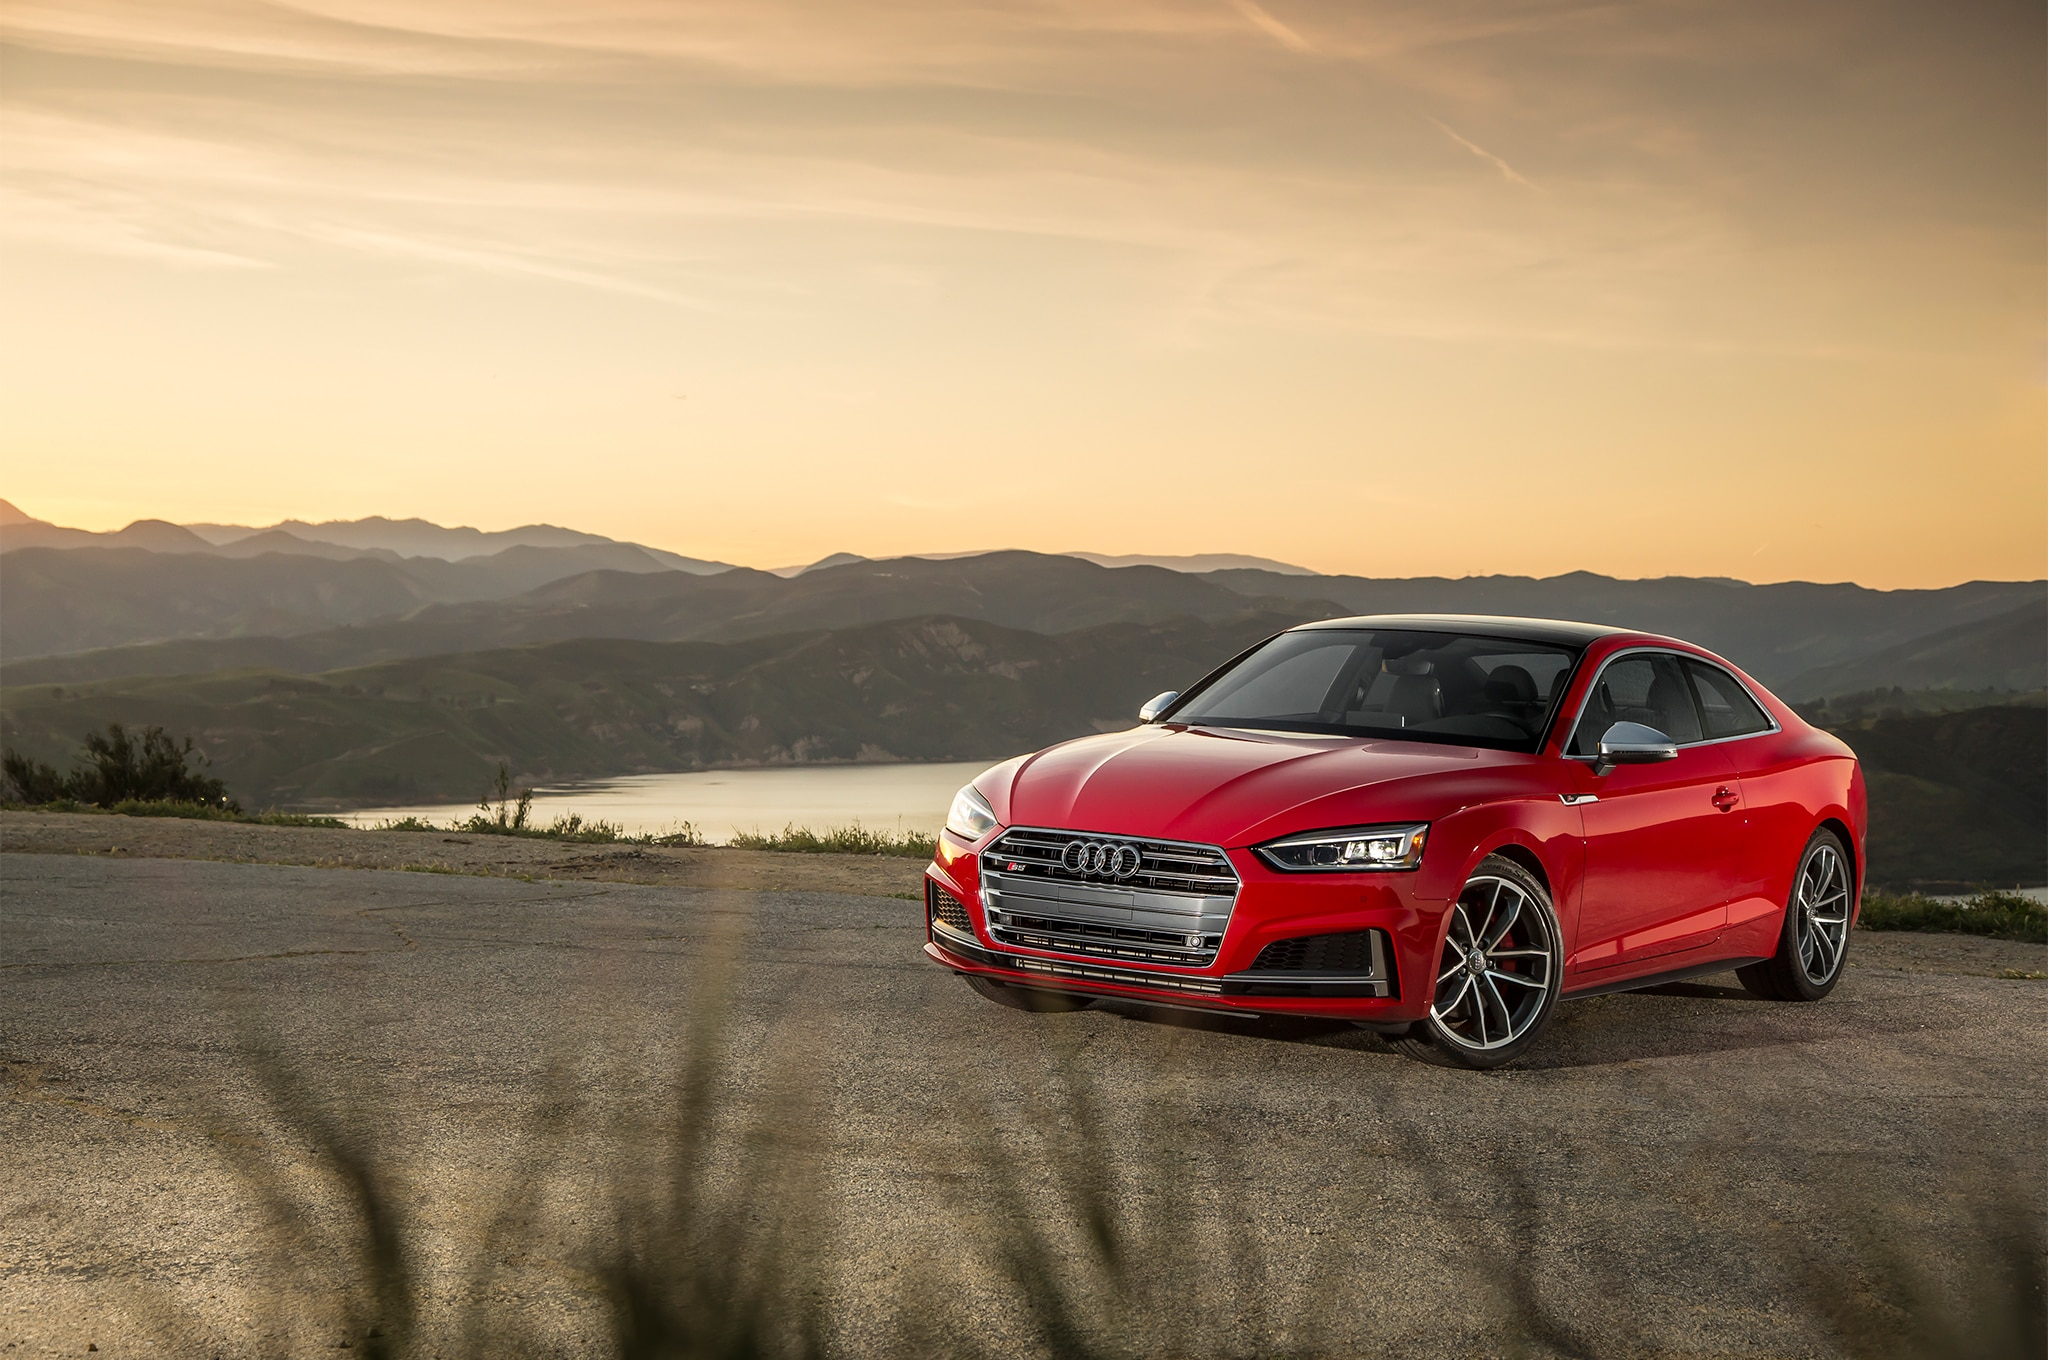 Audi 0 60 >> 2018 Audi S5 Coupe First Drive Review | Automobile Magazine